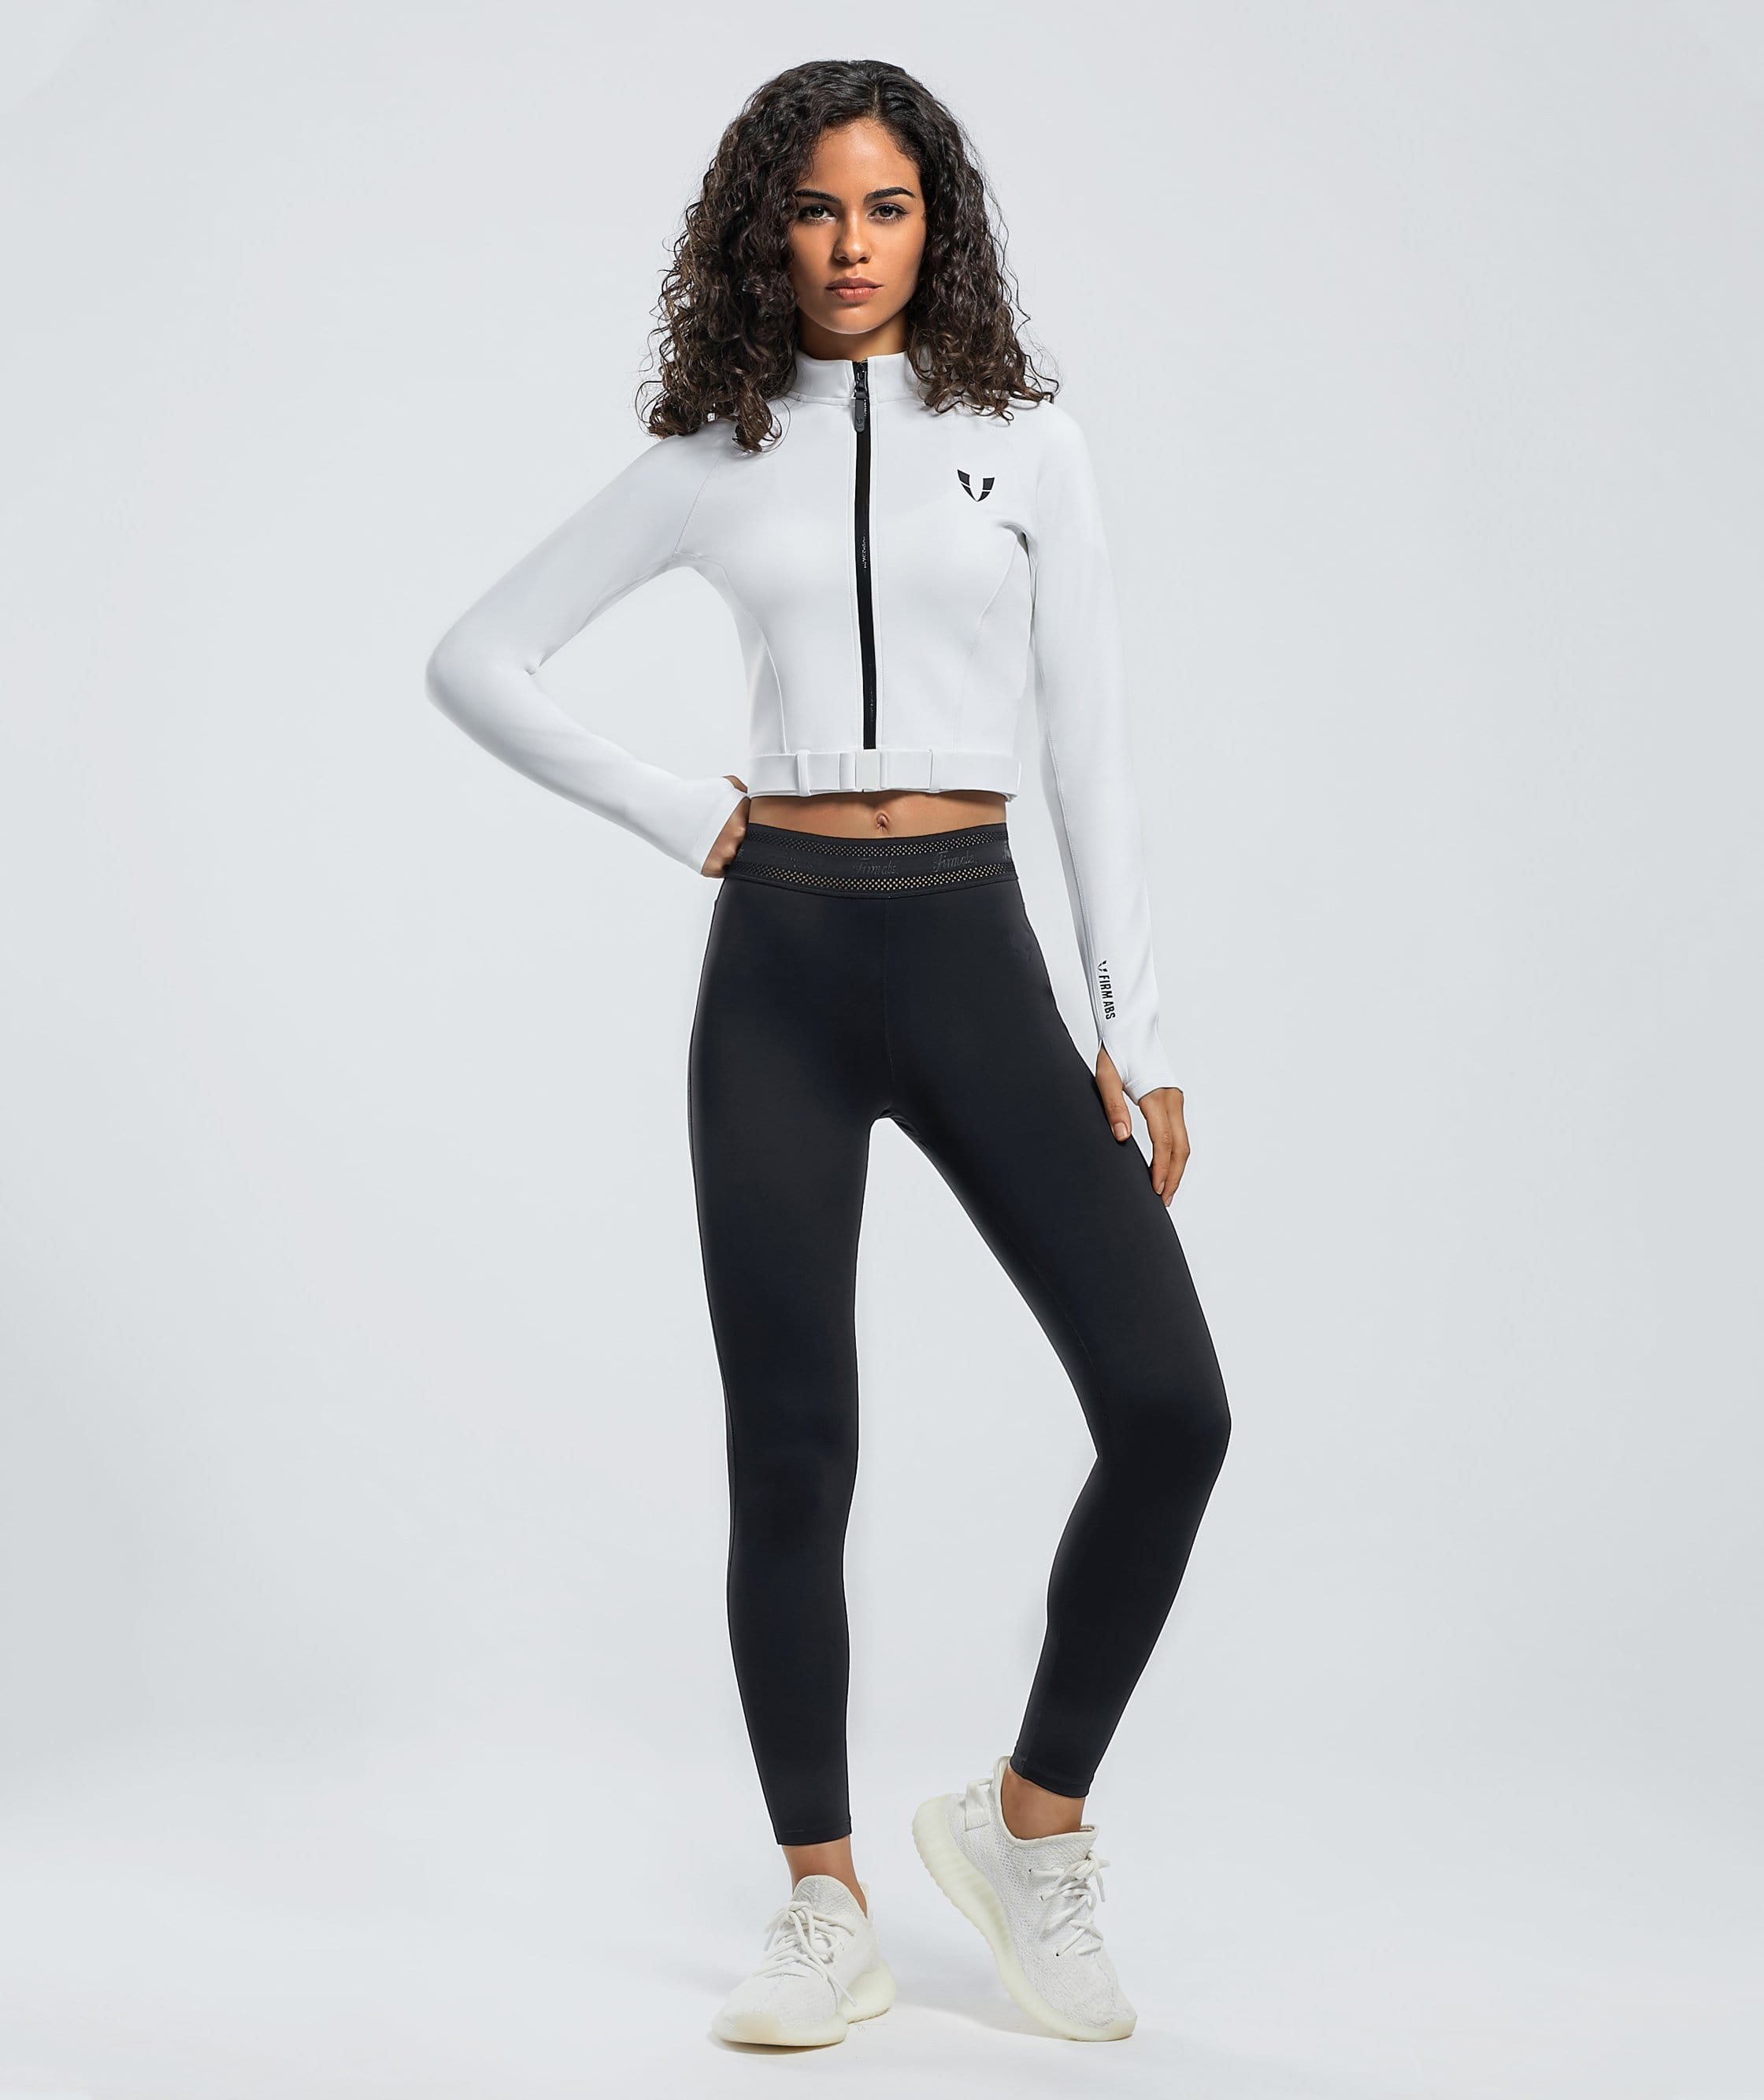 Challenge Jacket - White - Firm Abs Fitness